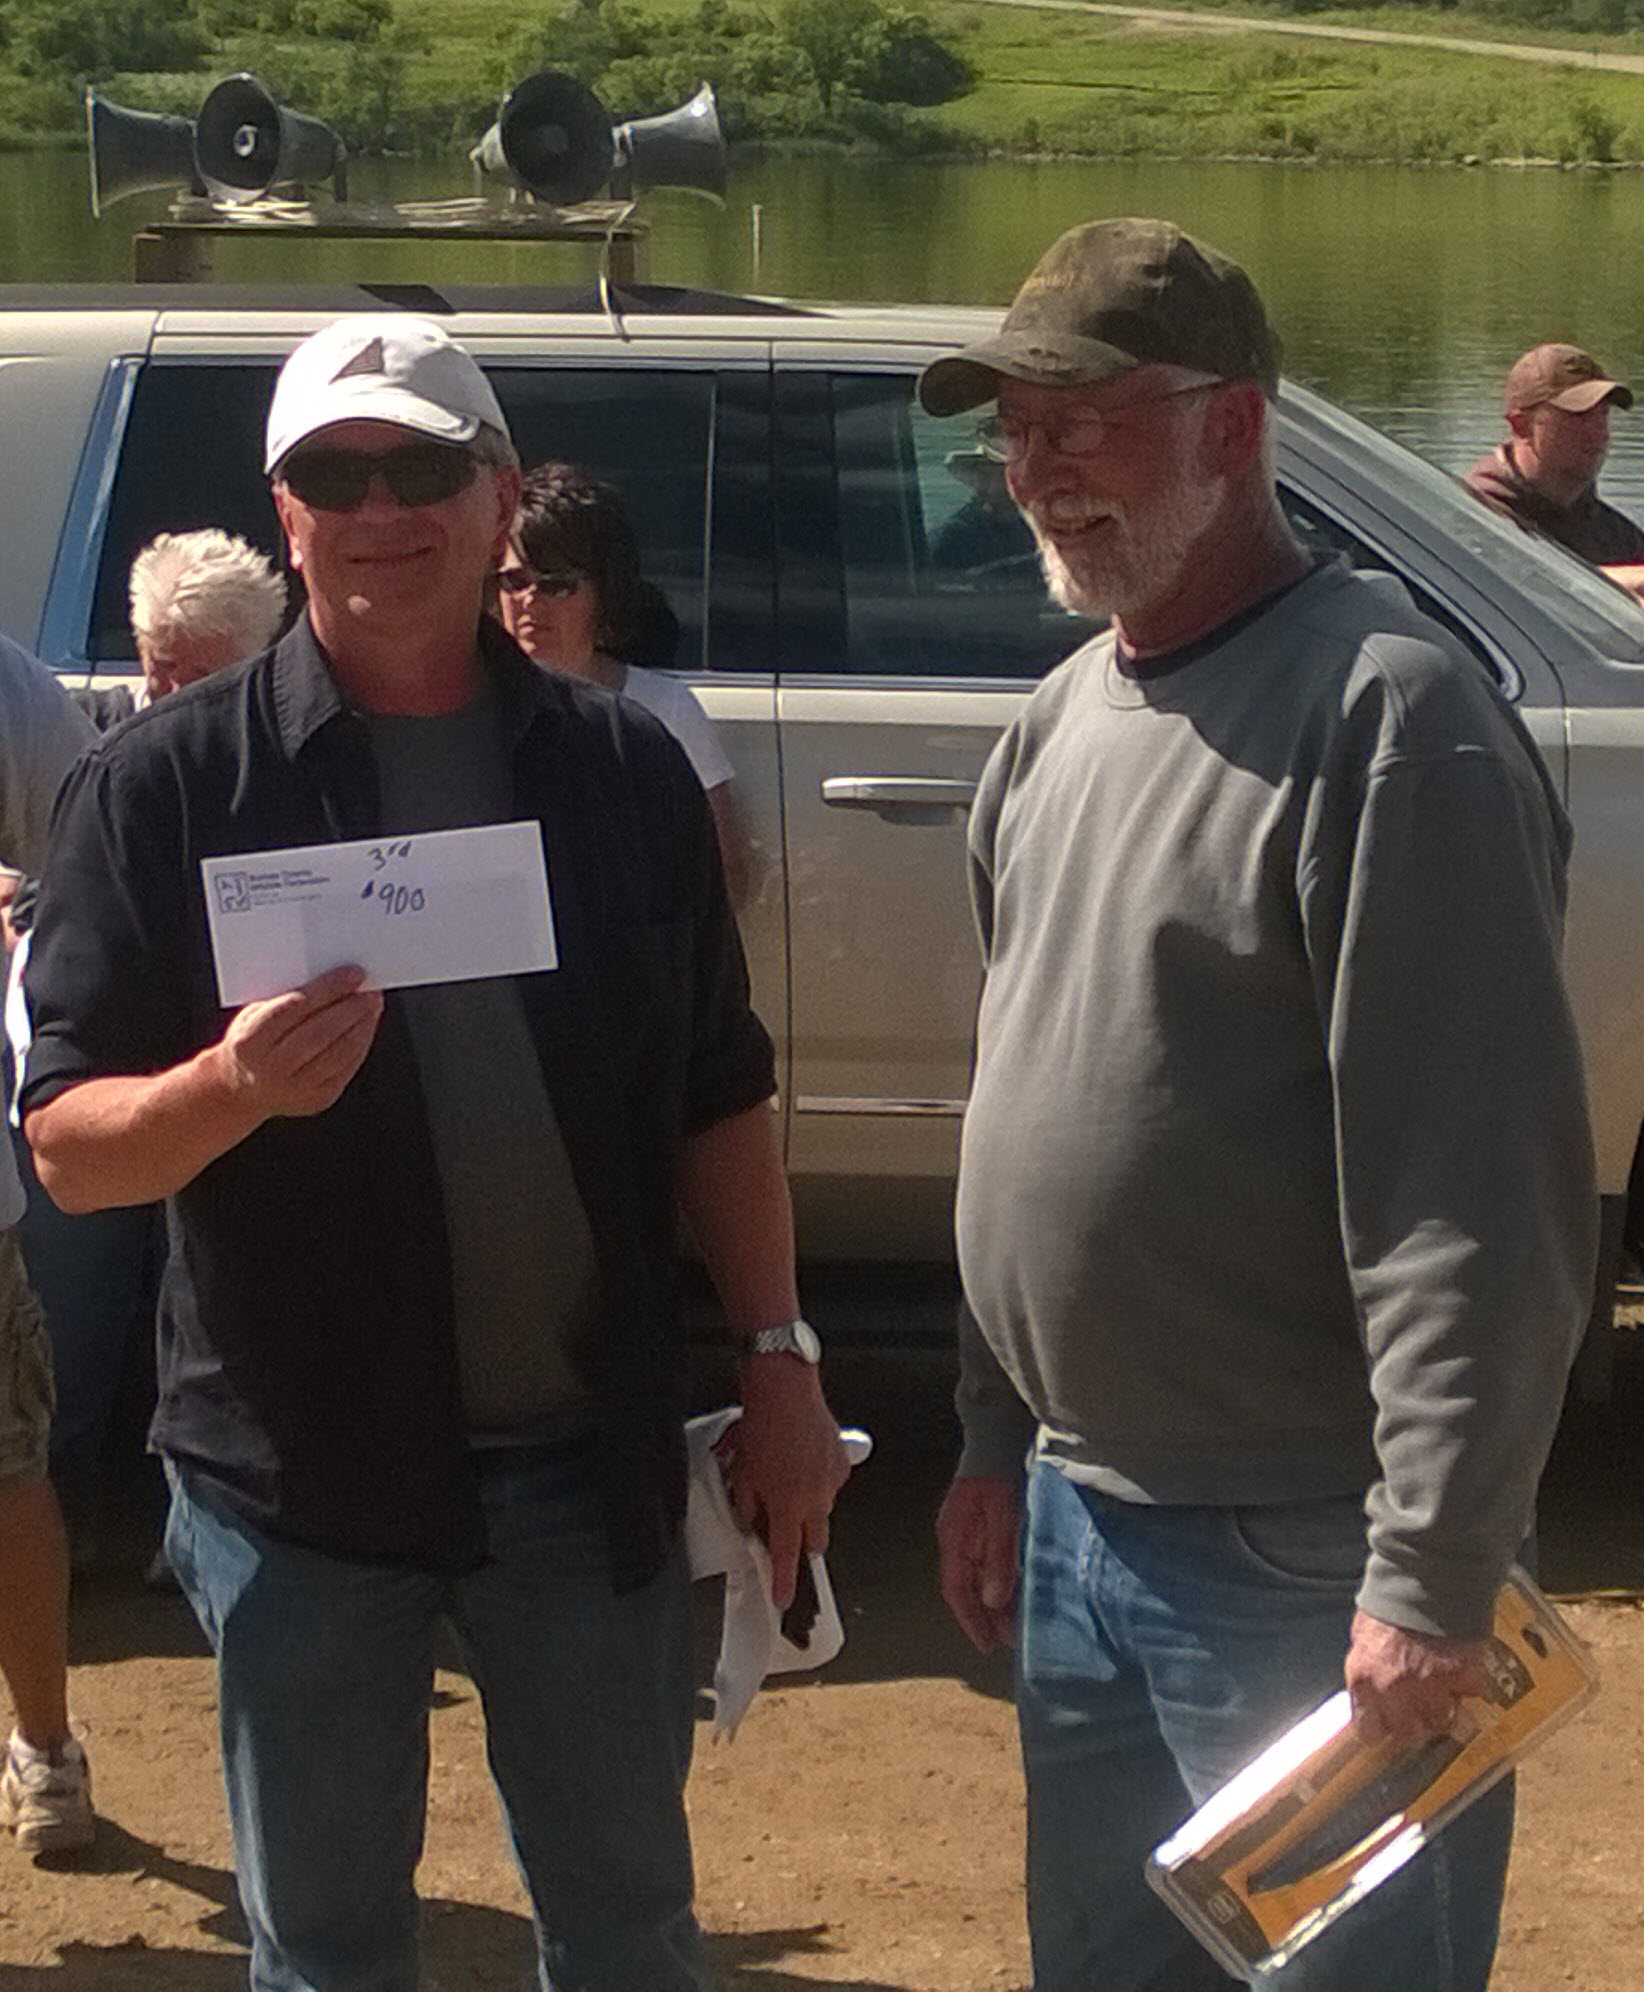 3RD PLACE STEVE HIRCHERT & MIKE CRABTREE